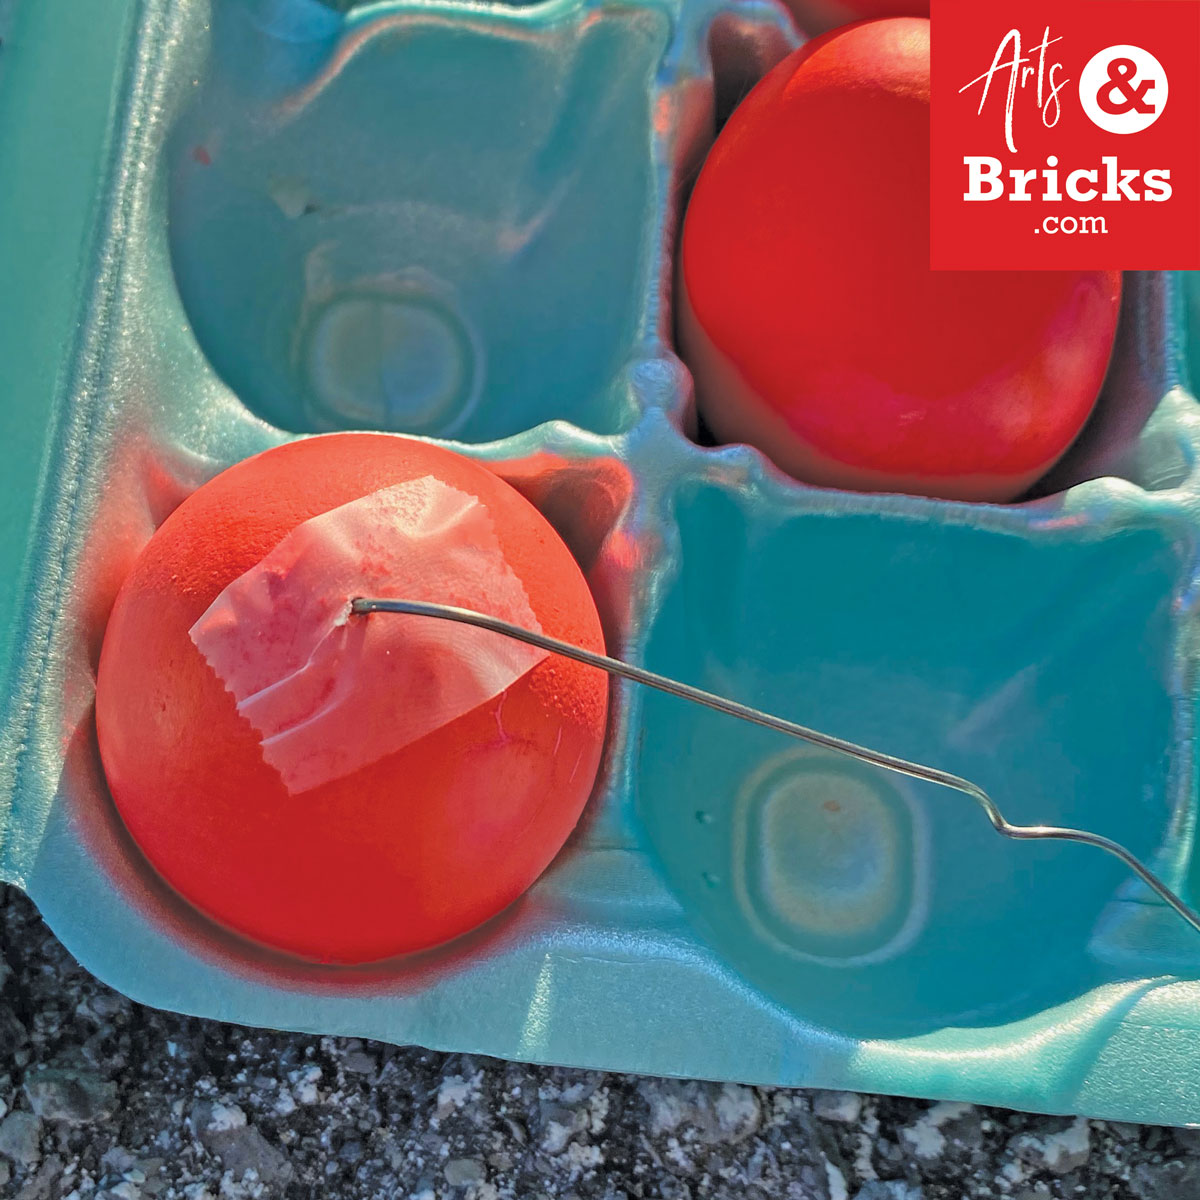 Break up the yolk with a paperclip or toothpick for blown-out eggs.